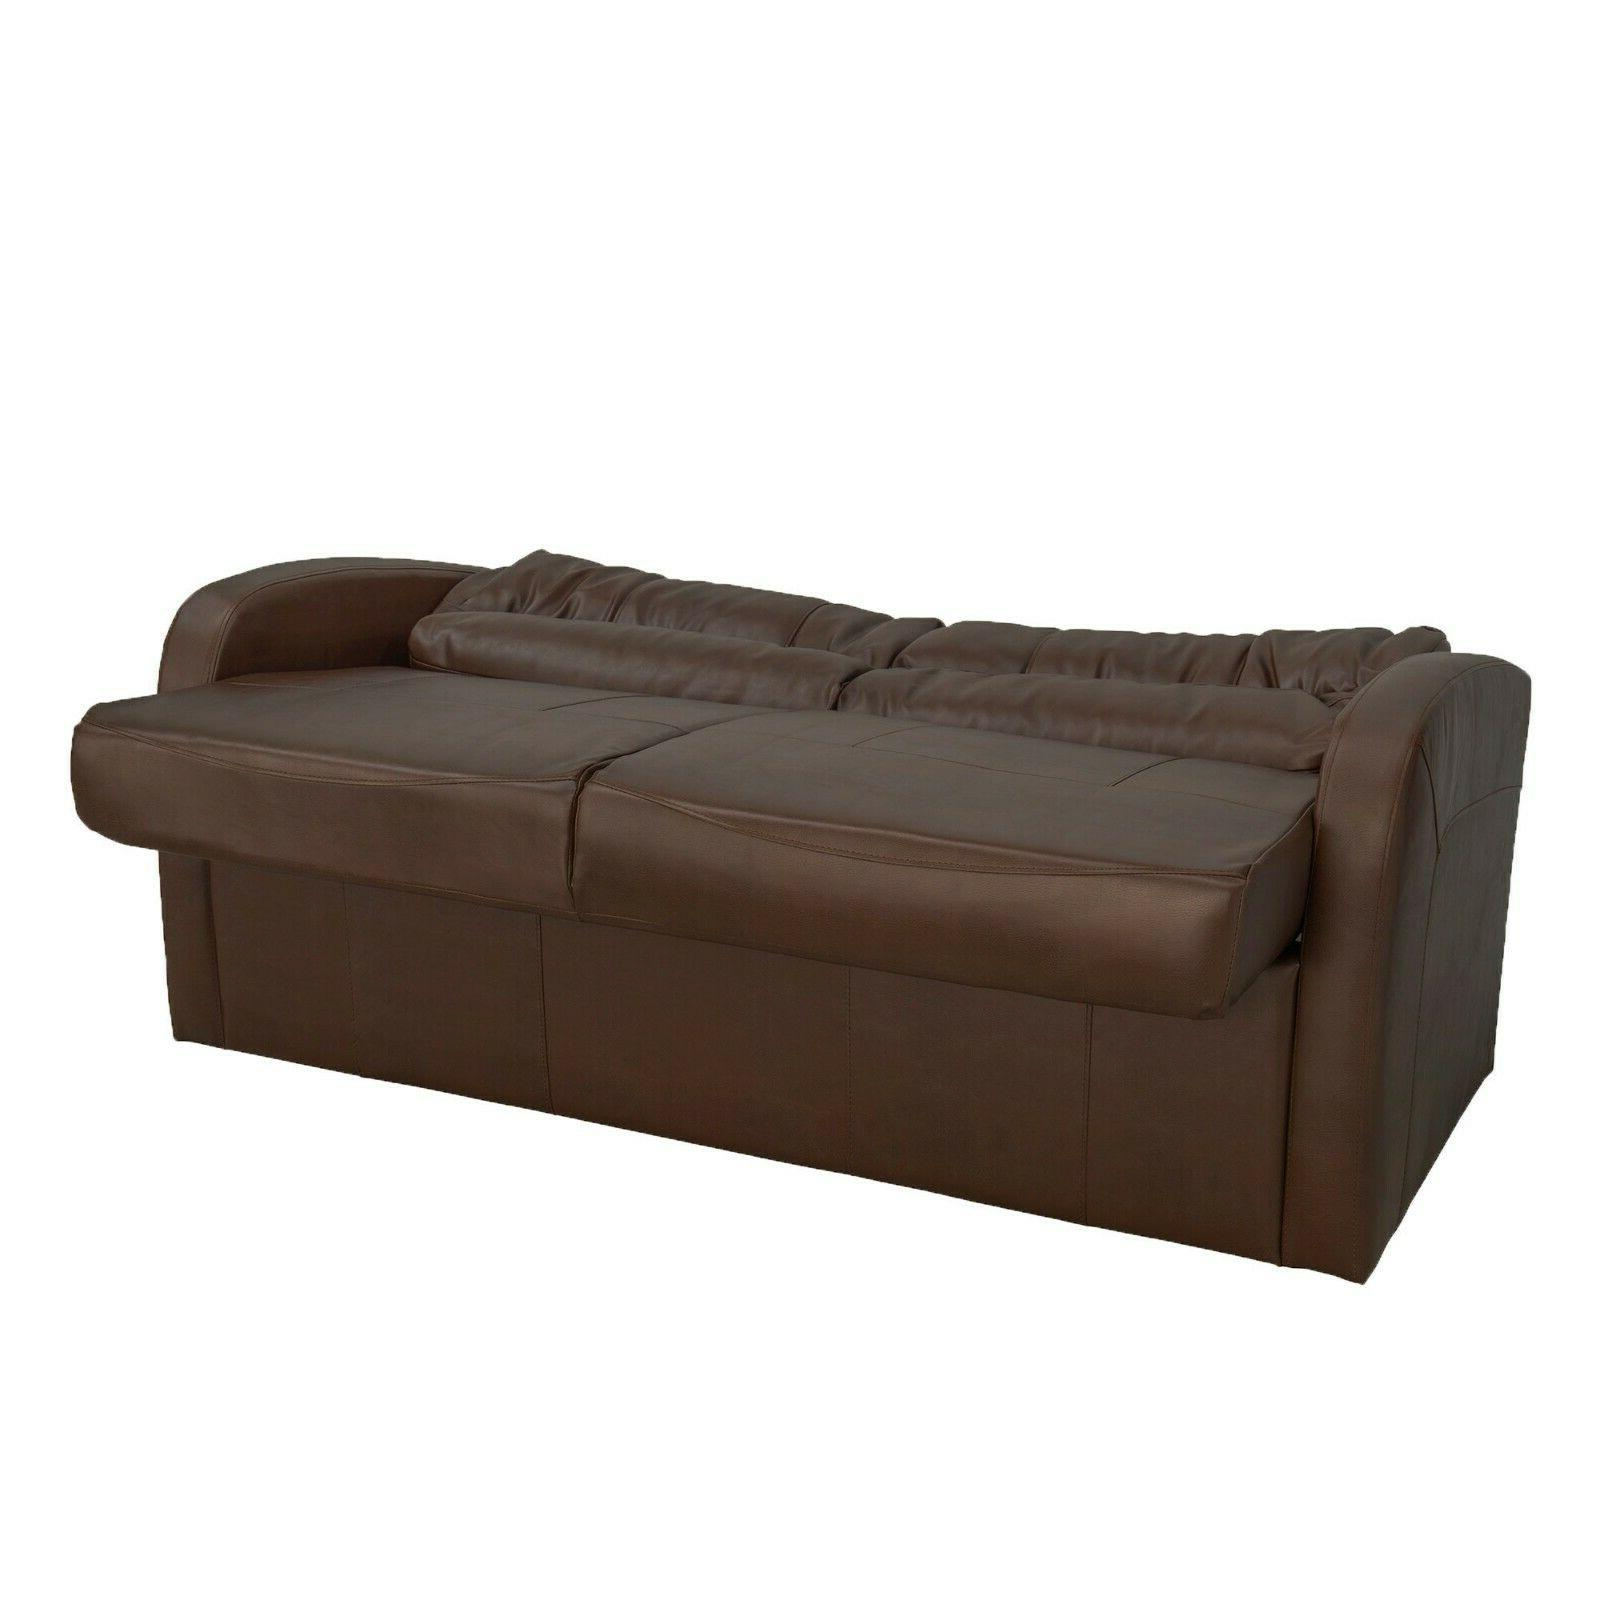 "RecPro 70"" Jack Sofa Couch with Furniture"